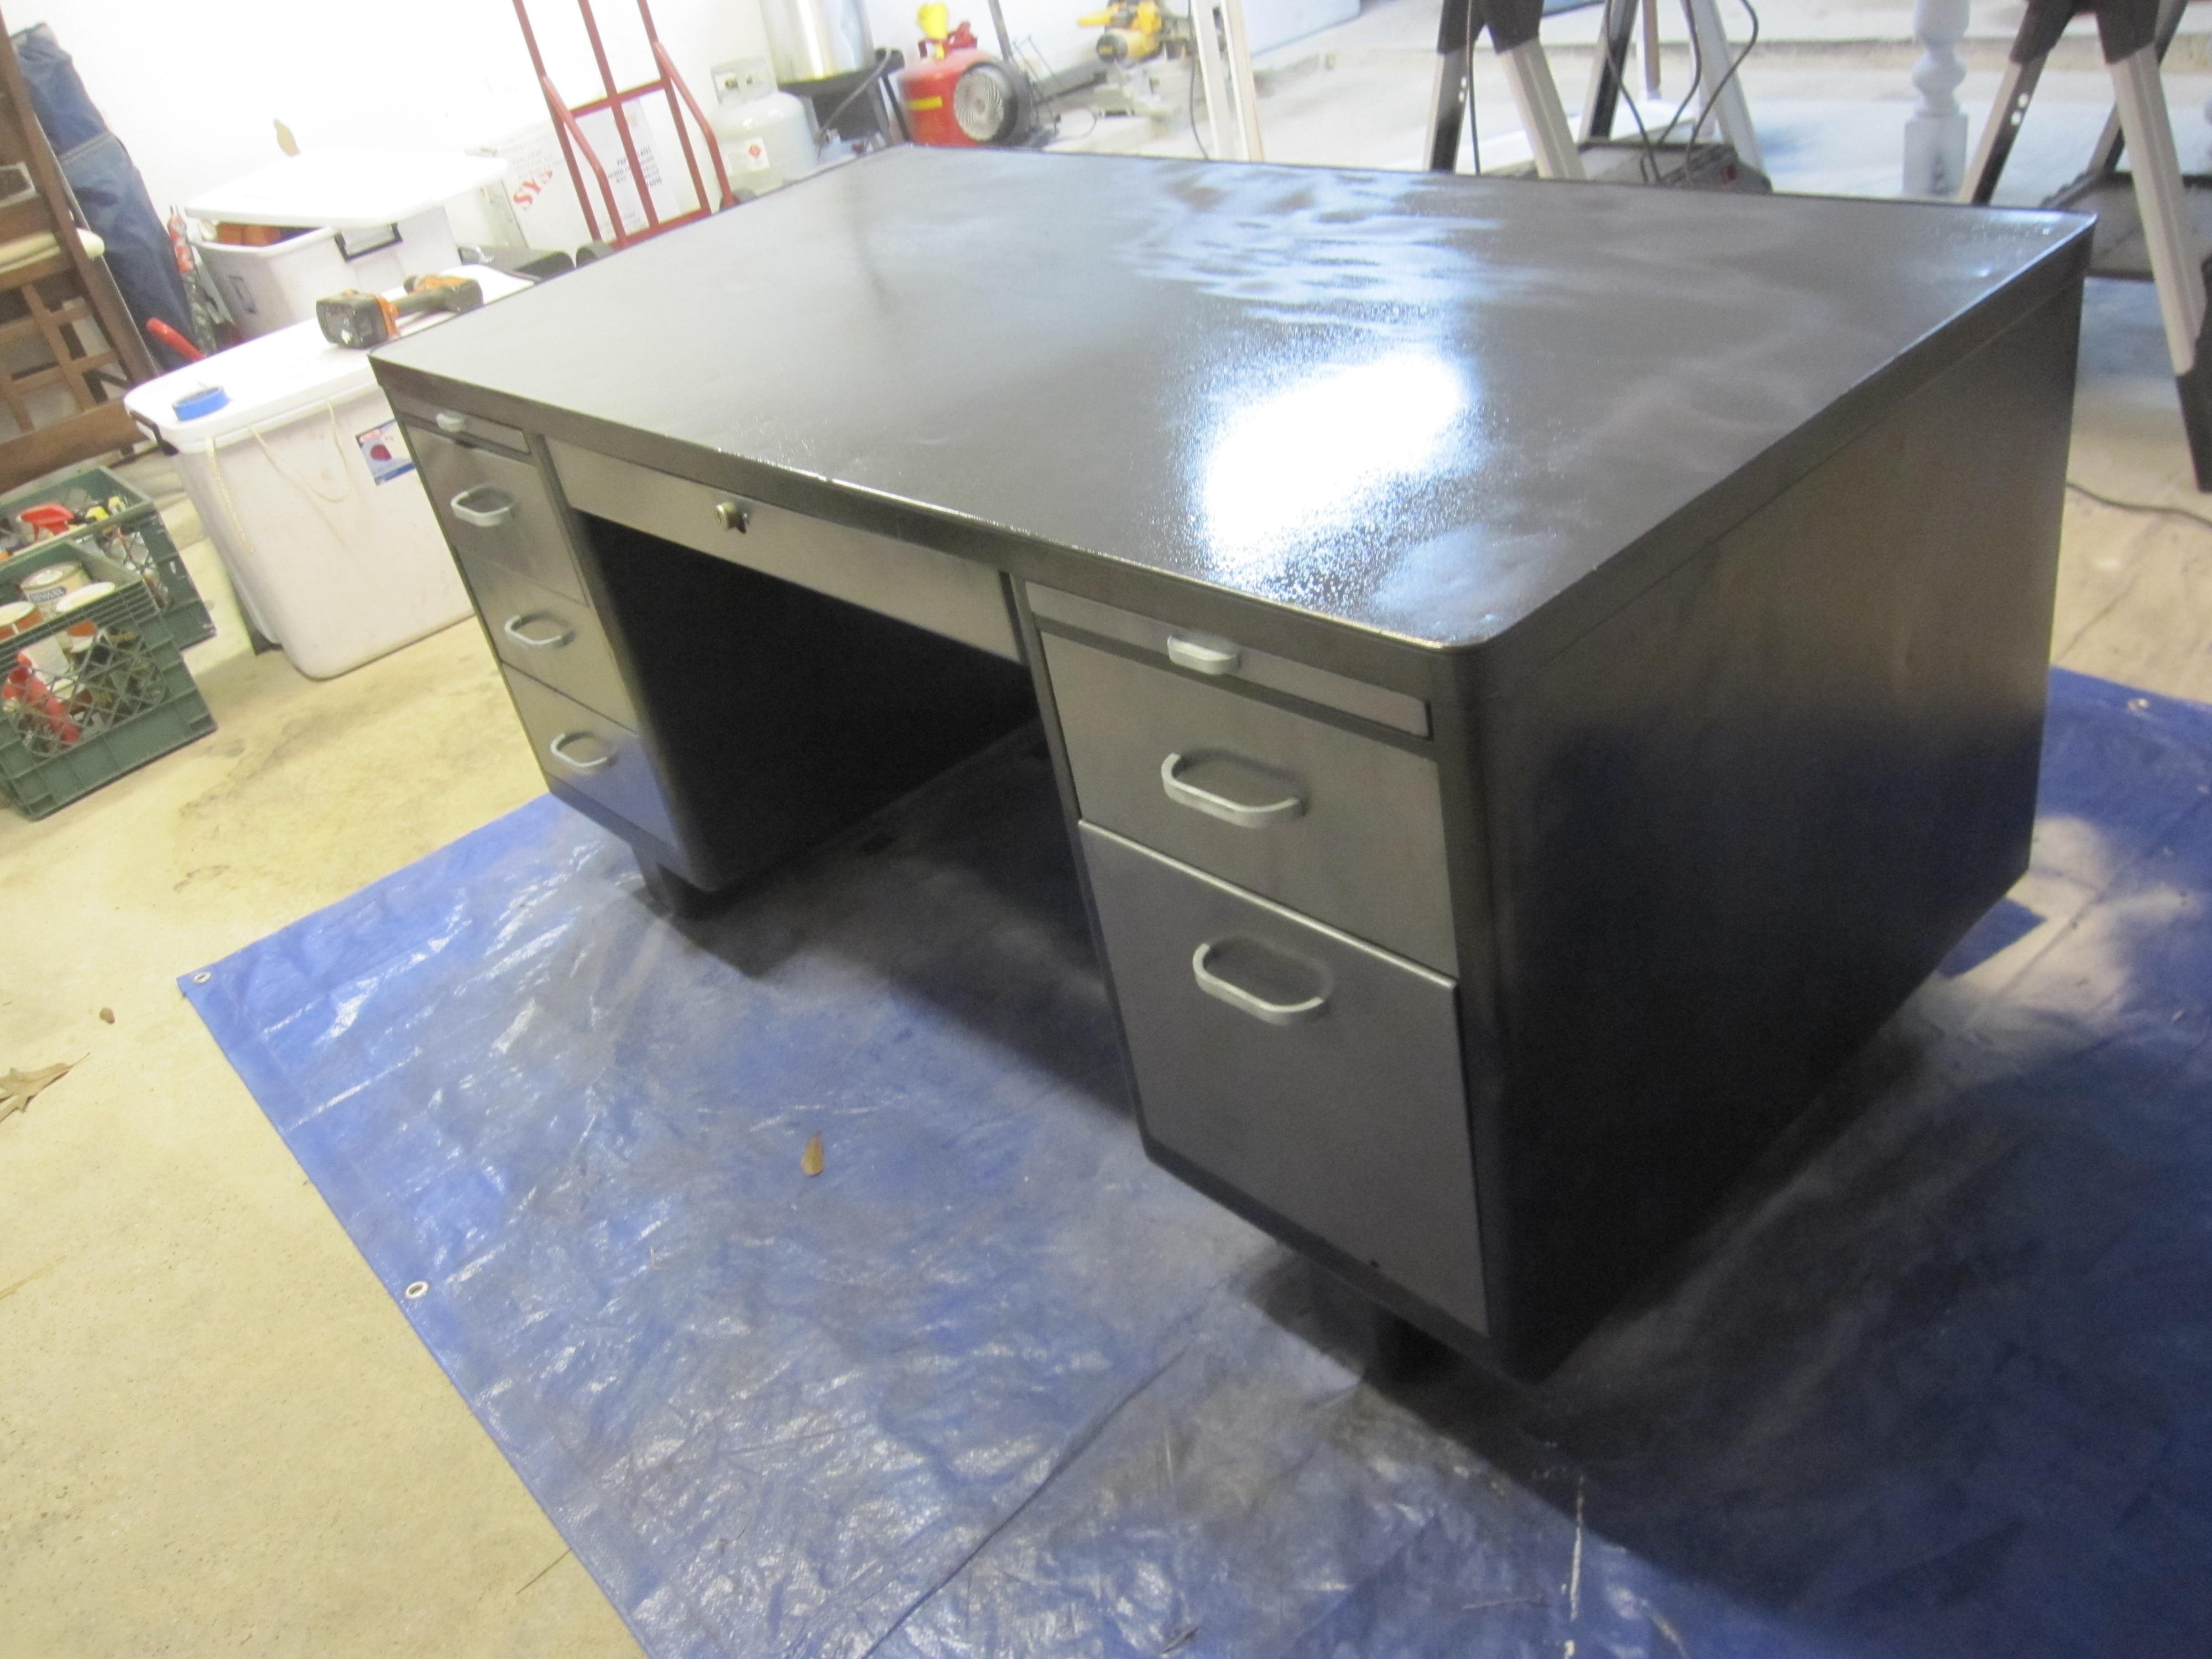 Uncategorized Vintage Steel Tanker Desk refinishing a steelcase tanker desk guide houston furniture drawers inside before finishing final paint coat